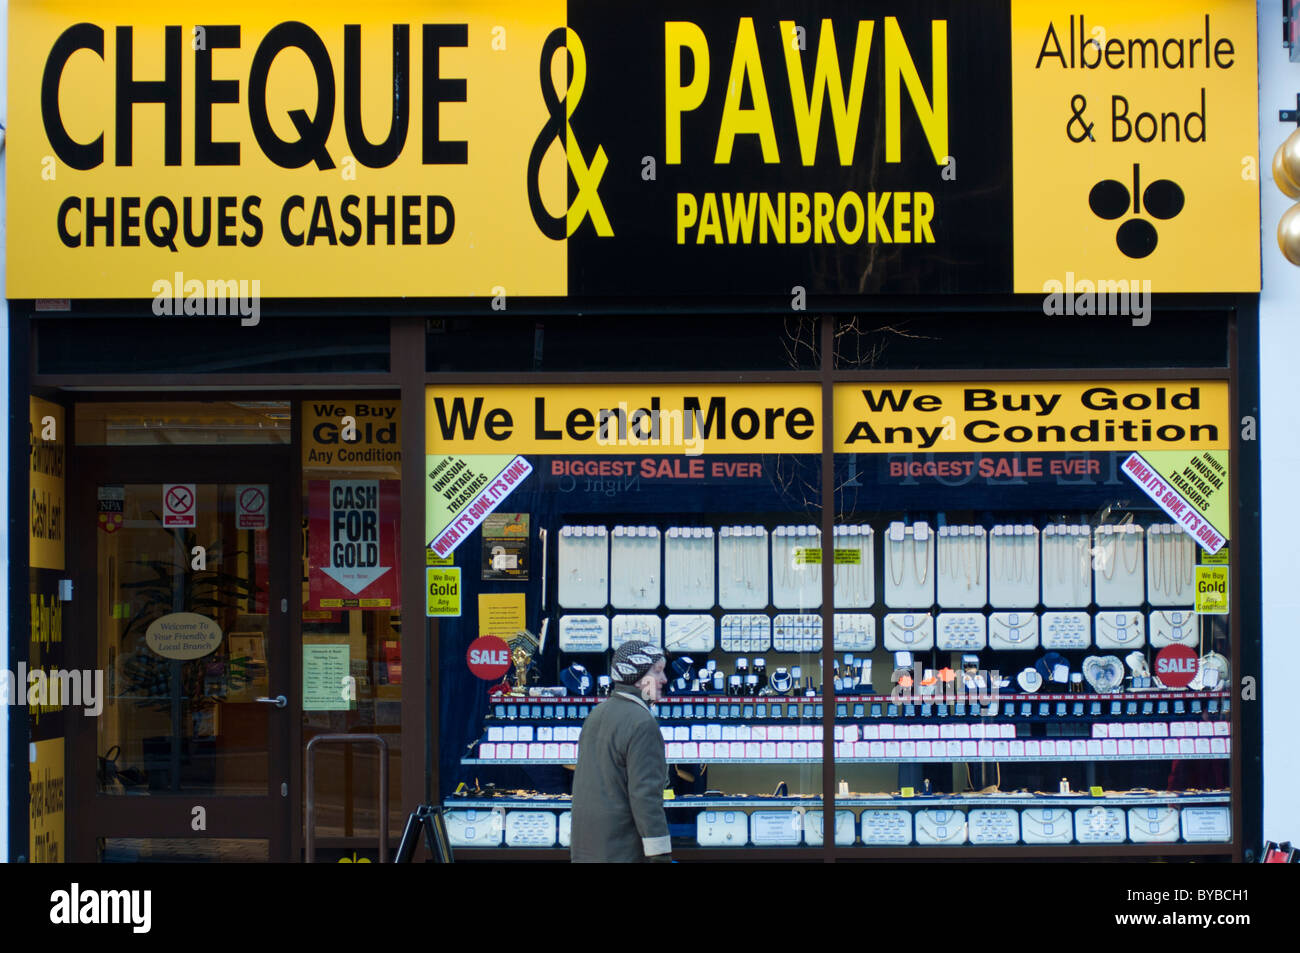 A pawnbrokers shop in Coventry, Warwickshire, England. - Stock Image